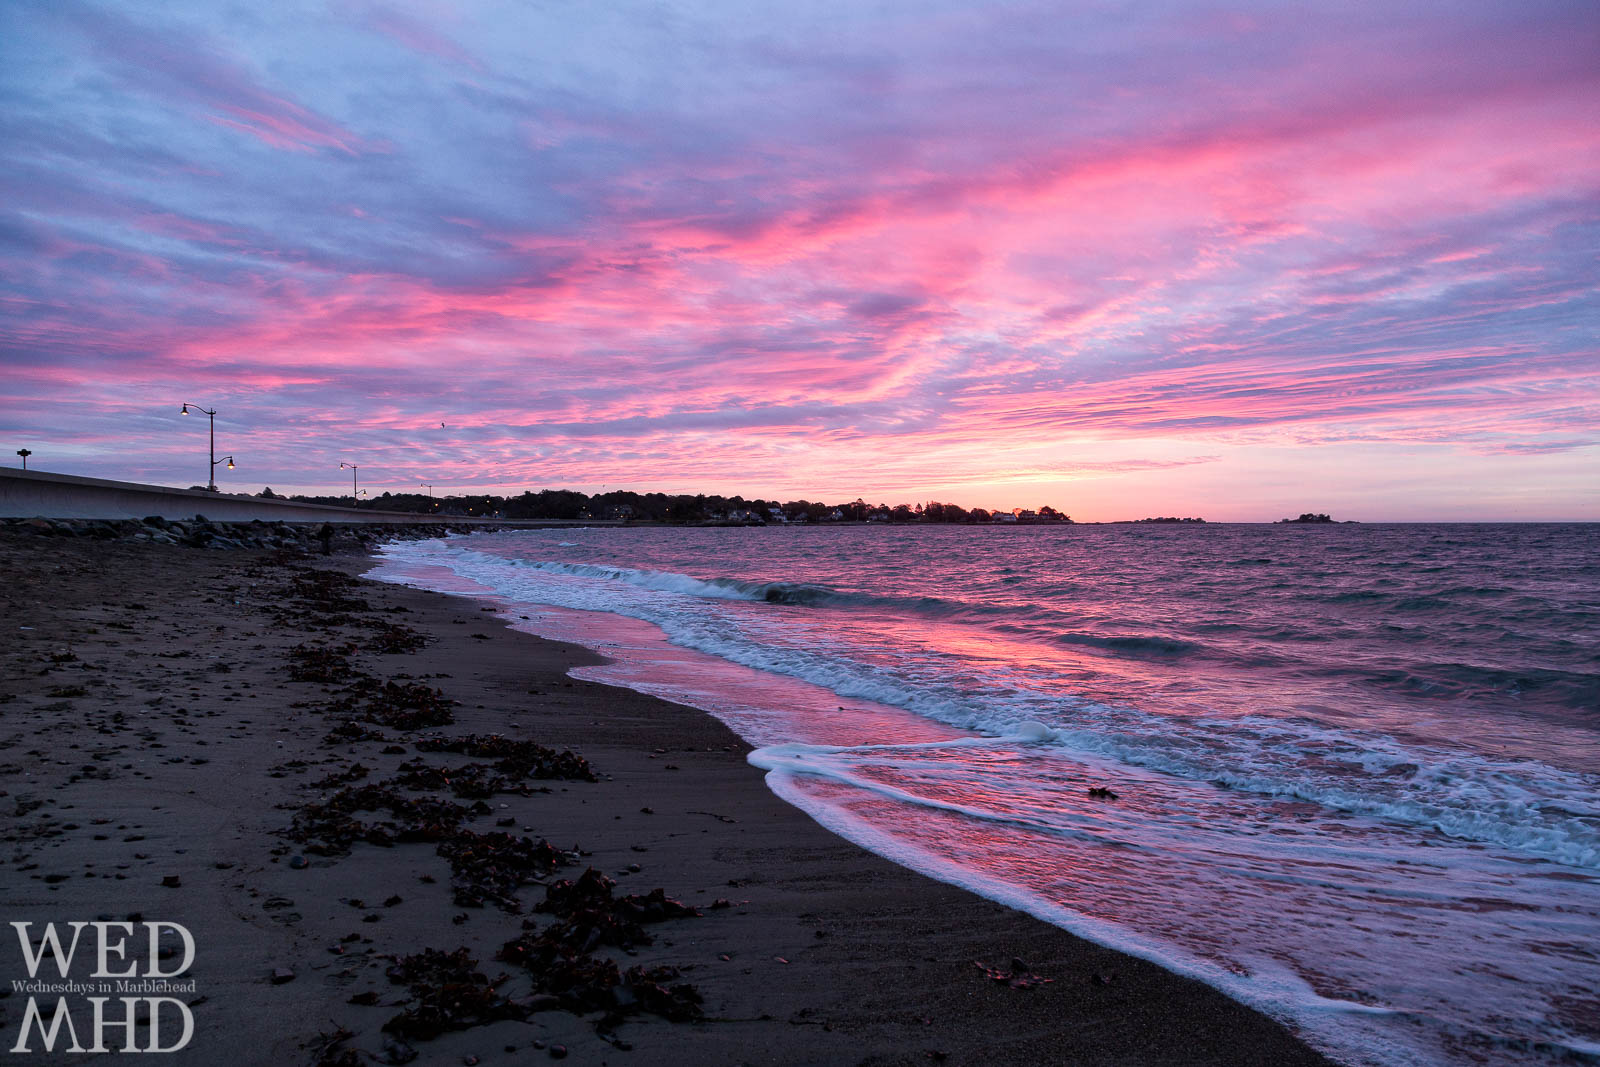 Devereux beach creates the backdrop for this dawn before the storm as waves reach shore and reflect the morning light ahead of an October shower